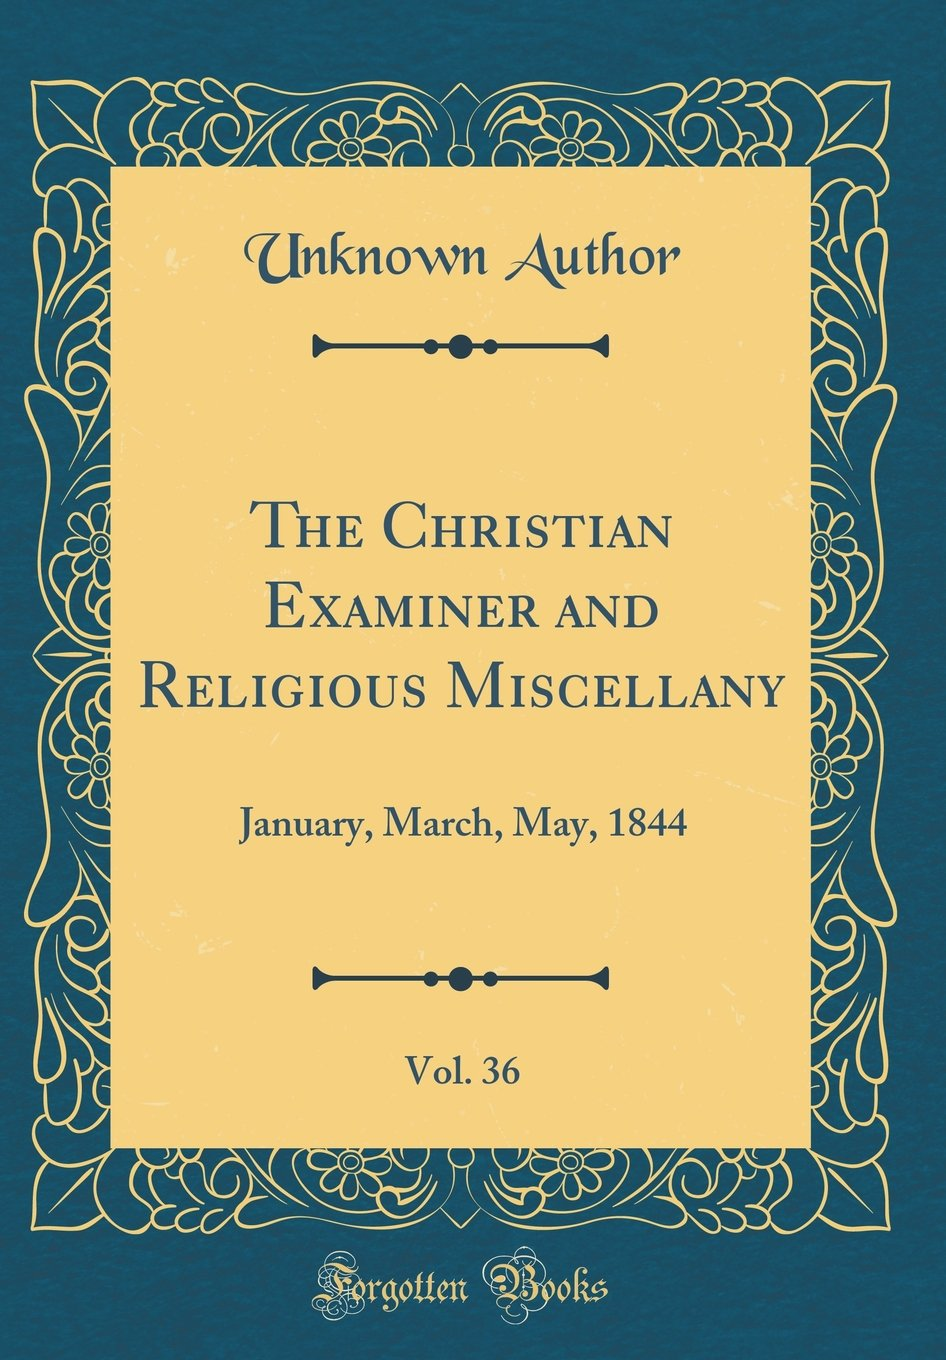 Read Online The Christian Examiner and Religious Miscellany, Vol. 36: January, March, May, 1844 (Classic Reprint) ebook